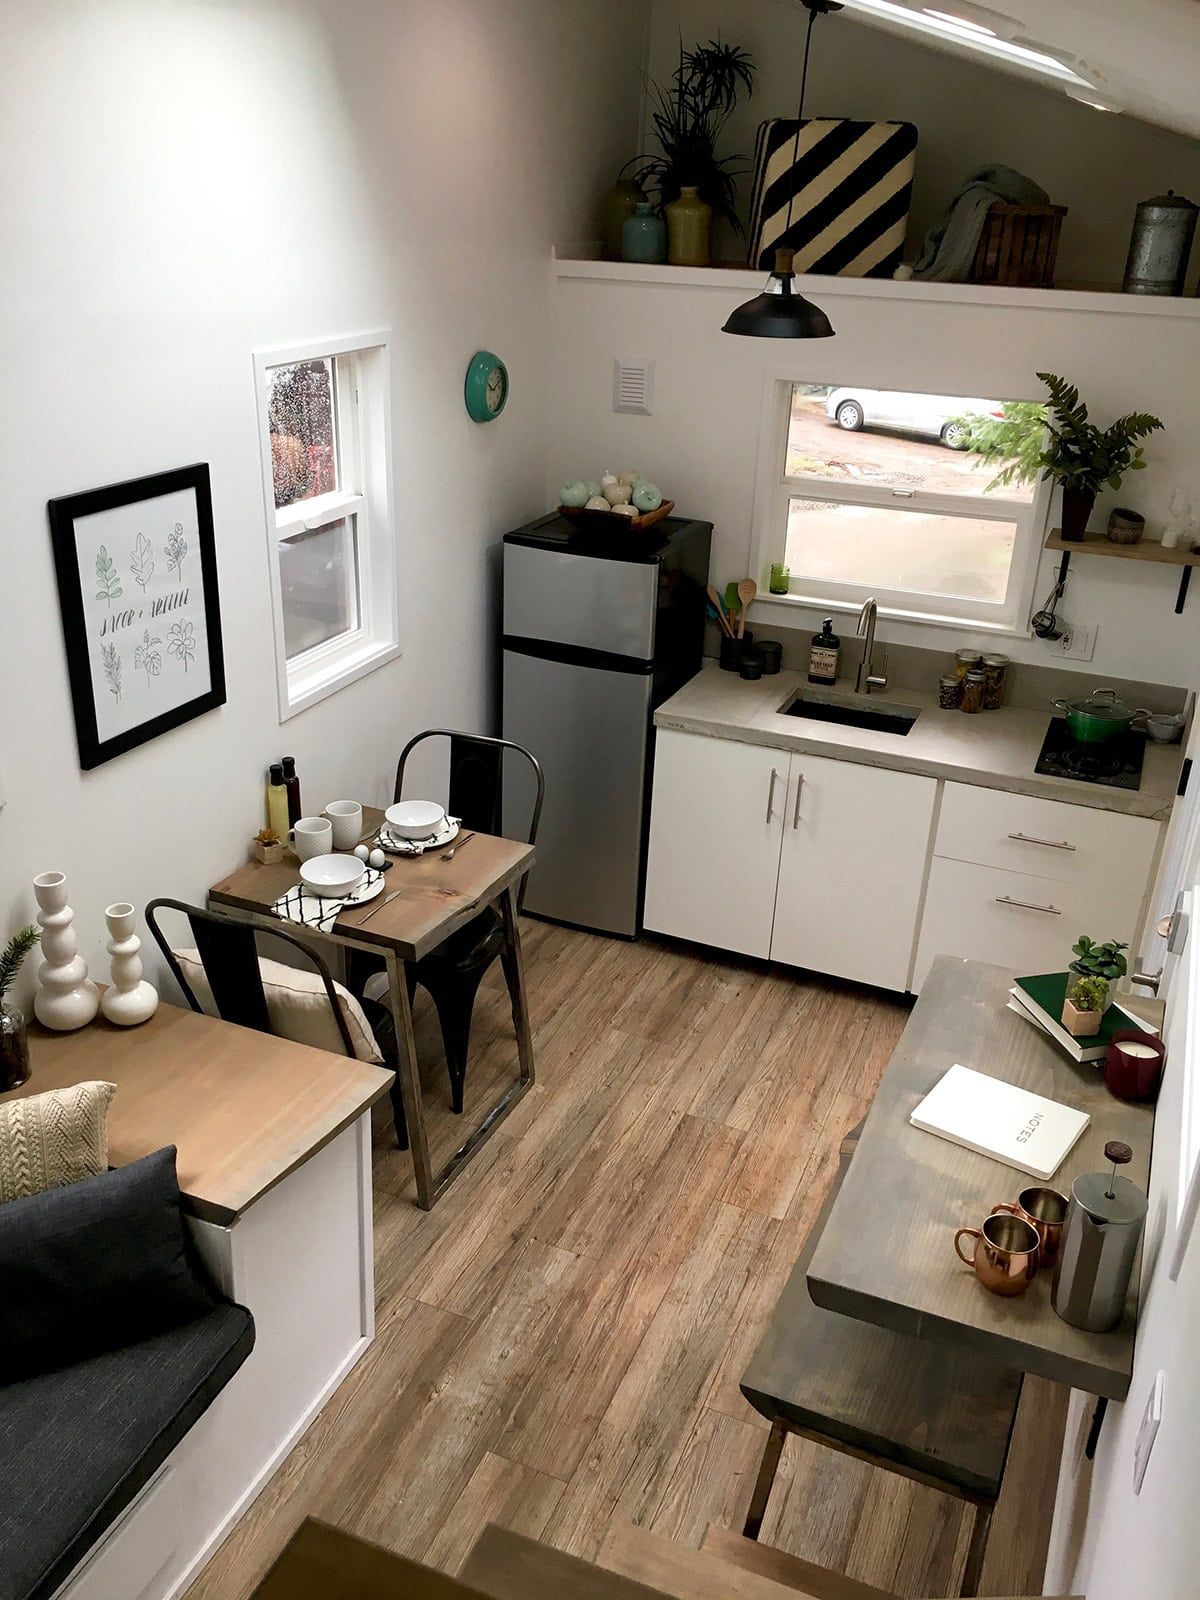 Modern Tiny House Interior: Midcentury Modern By Tiny Heirloom